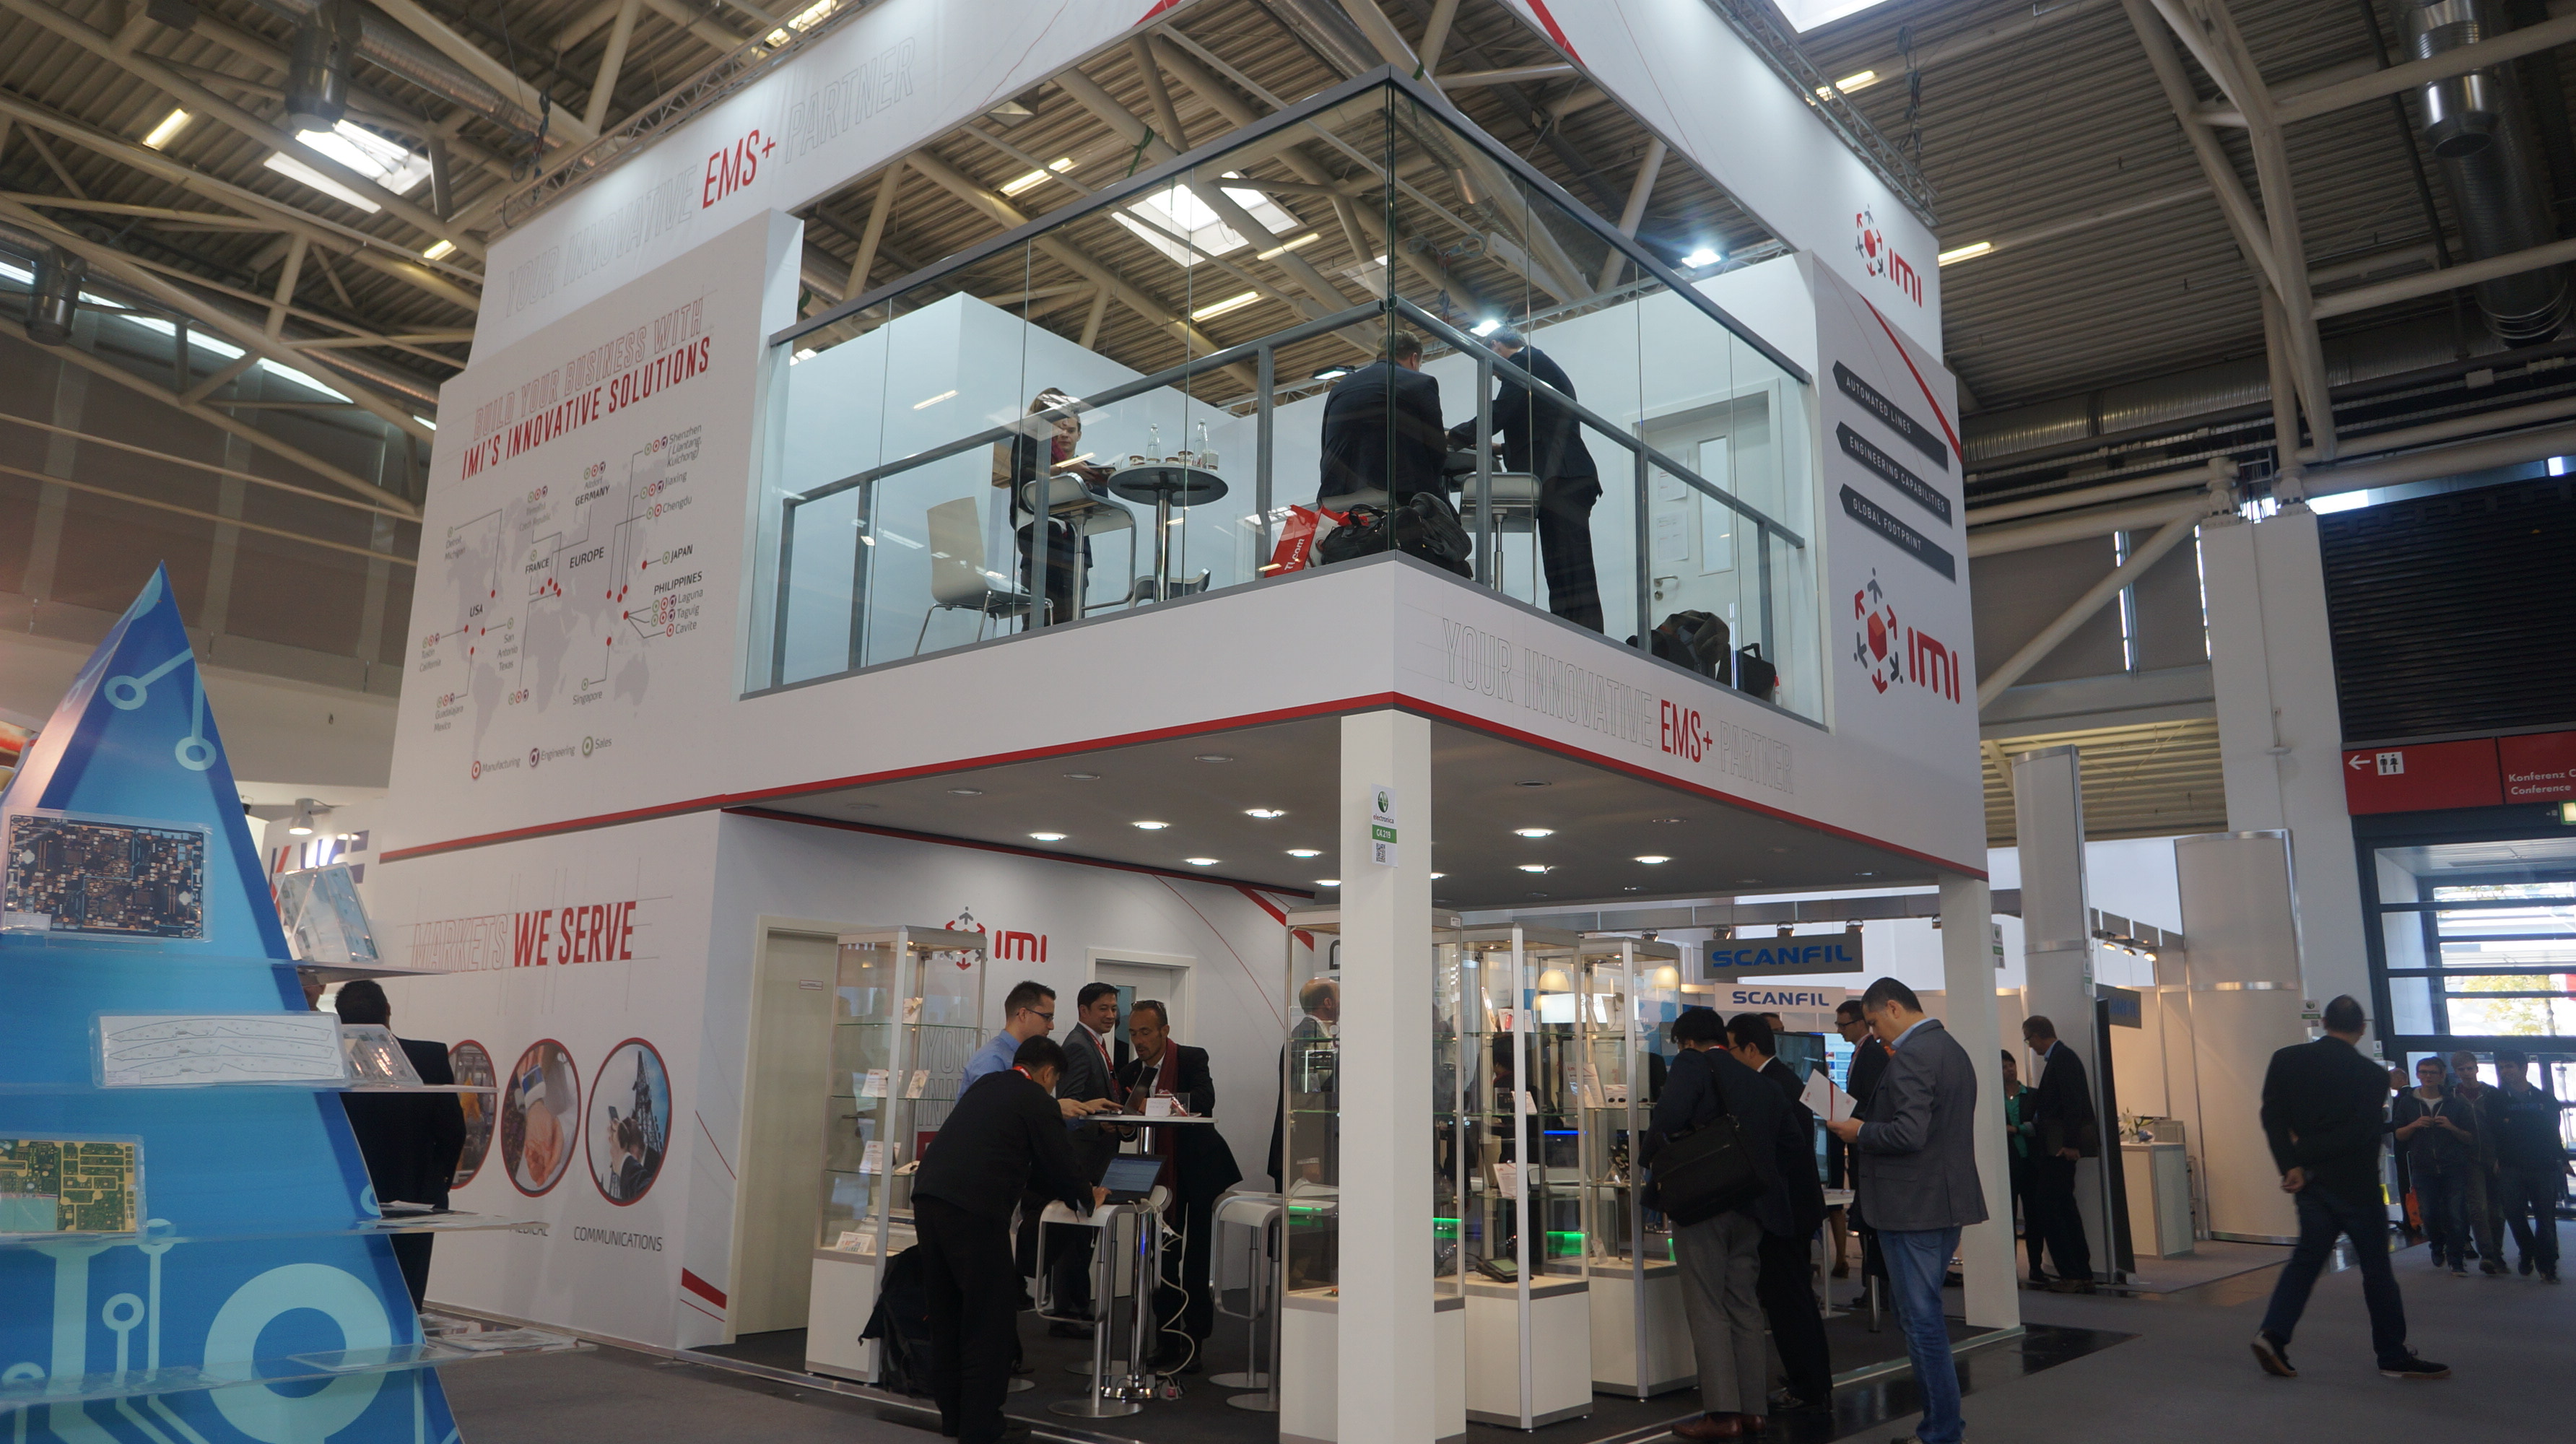 Electronica photos (12) - IMI to Showcase its Expanding Capabilities at Electronica 2018 - IMI News